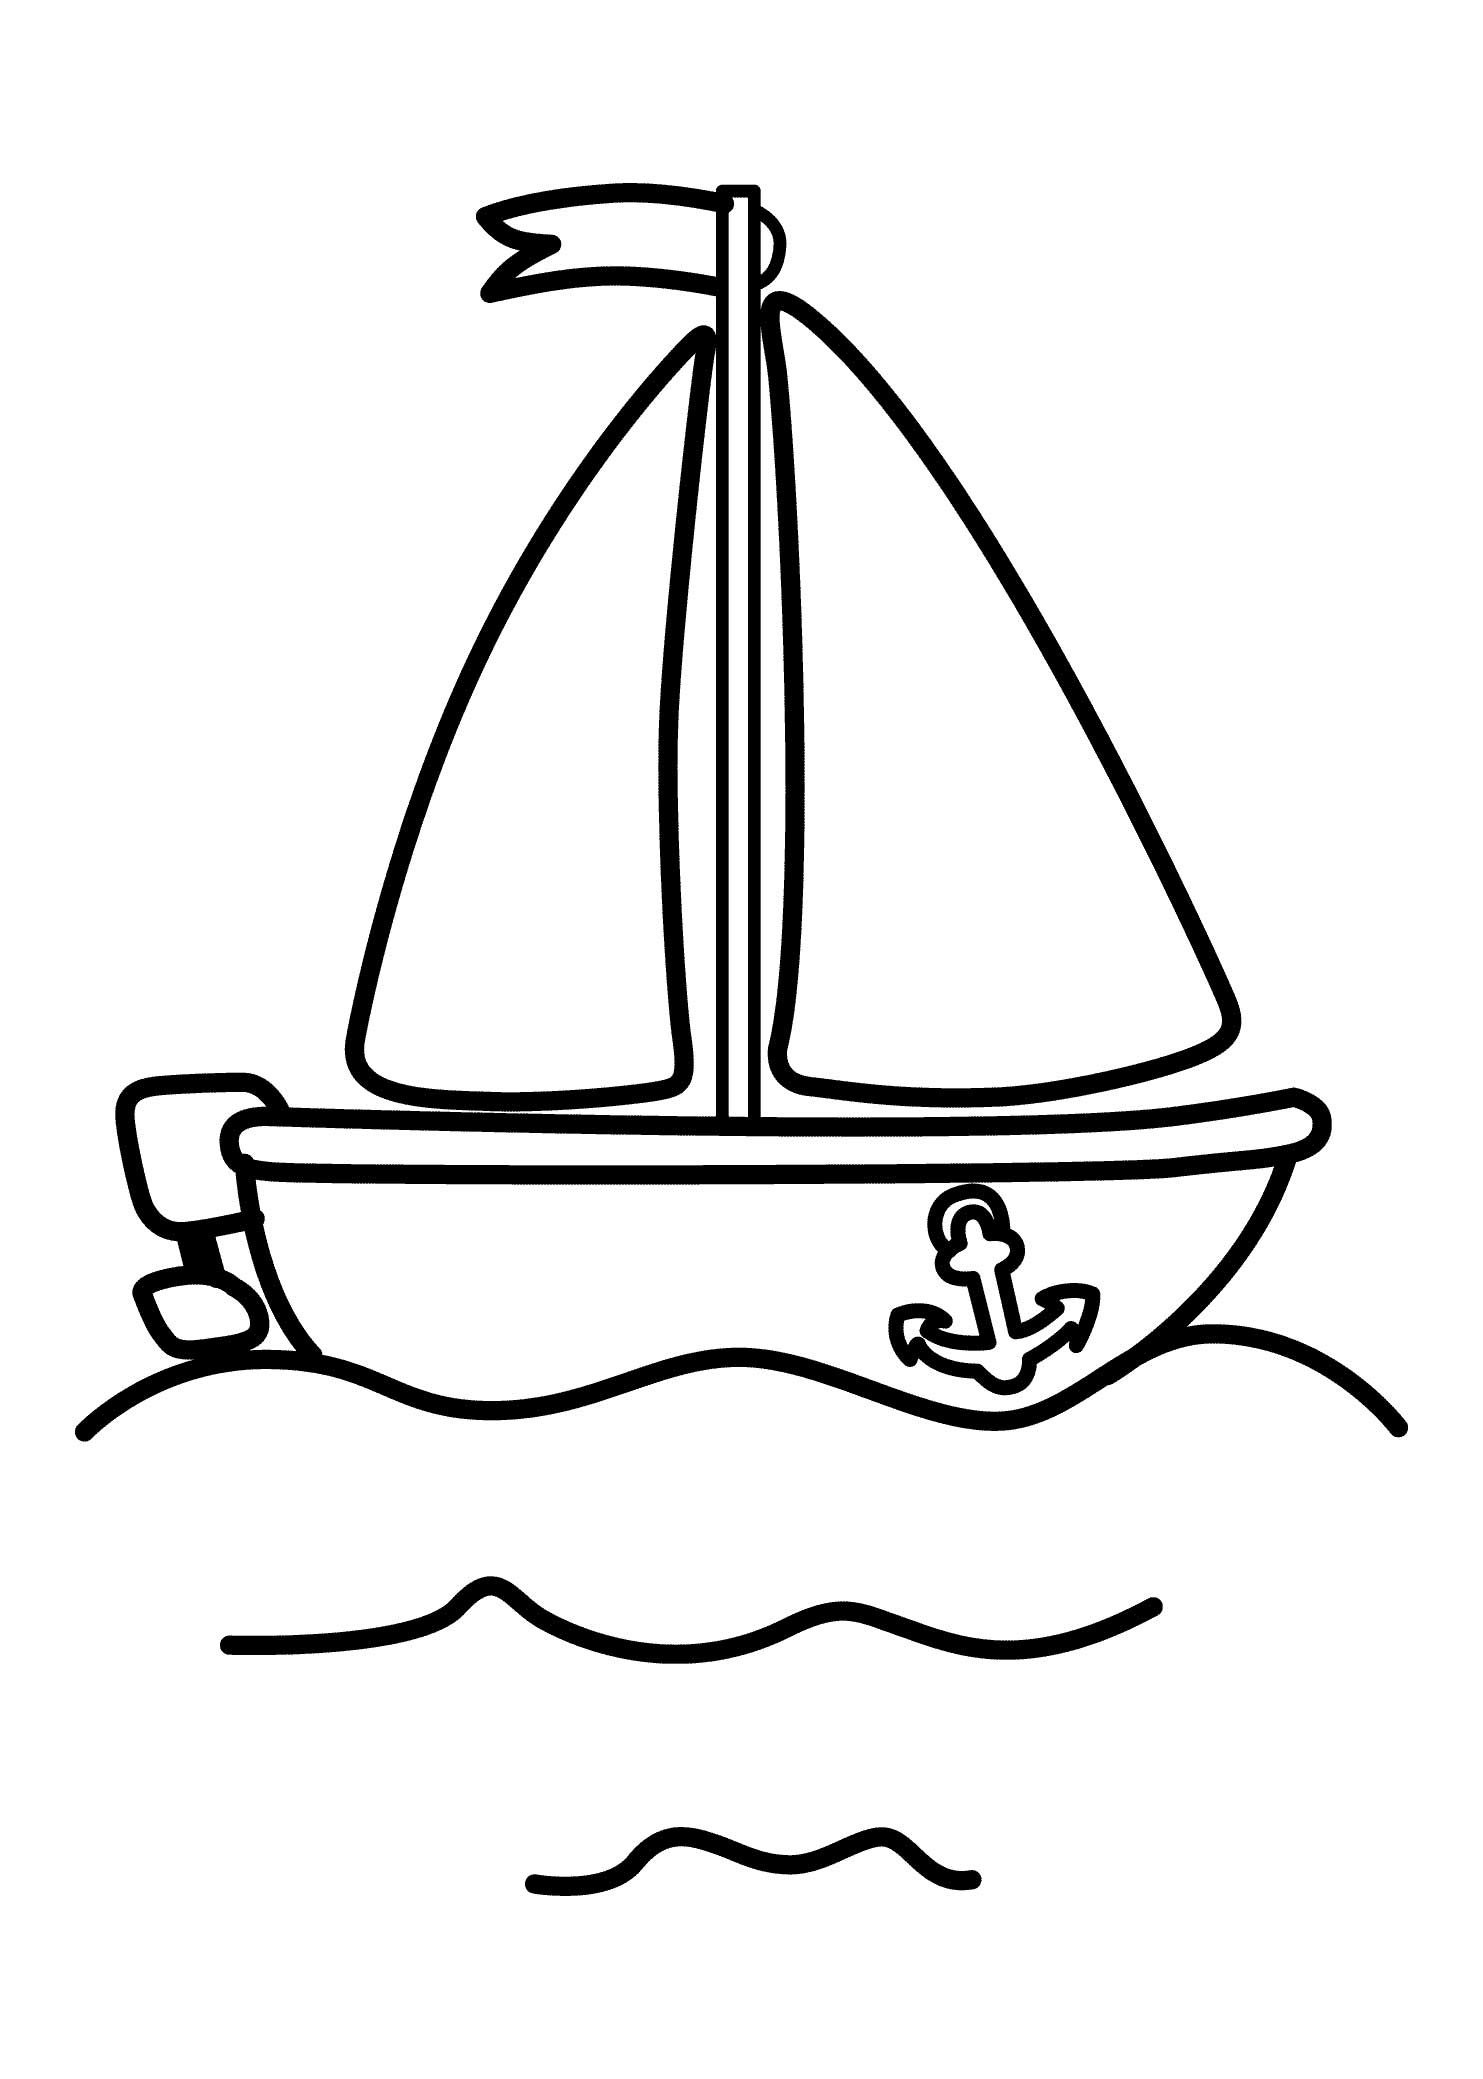 Pinshreya Thakur On Free Coloring Pages   Coloring Pages For - Free Printable Boat Pictures